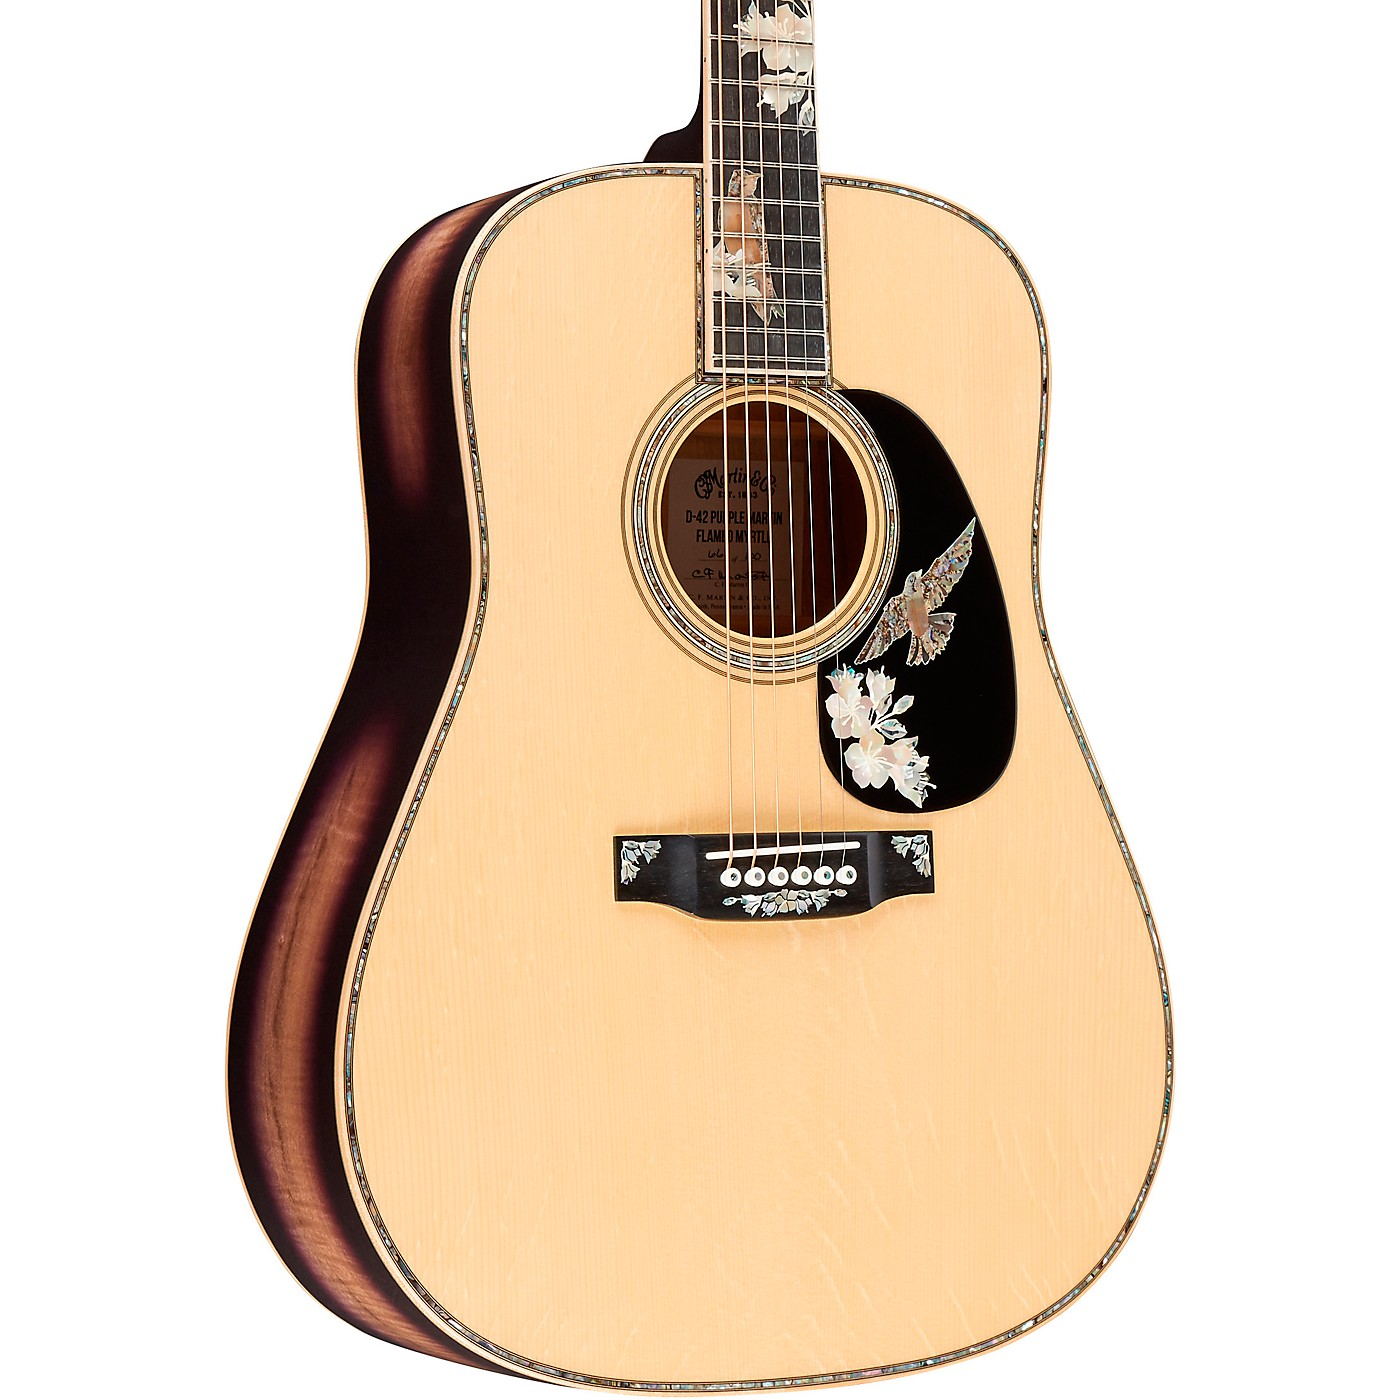 Martin D-42 Purple Martin Limited-Edition Flamed Myrtle Dreadnought Acoustic Guitar thumbnail